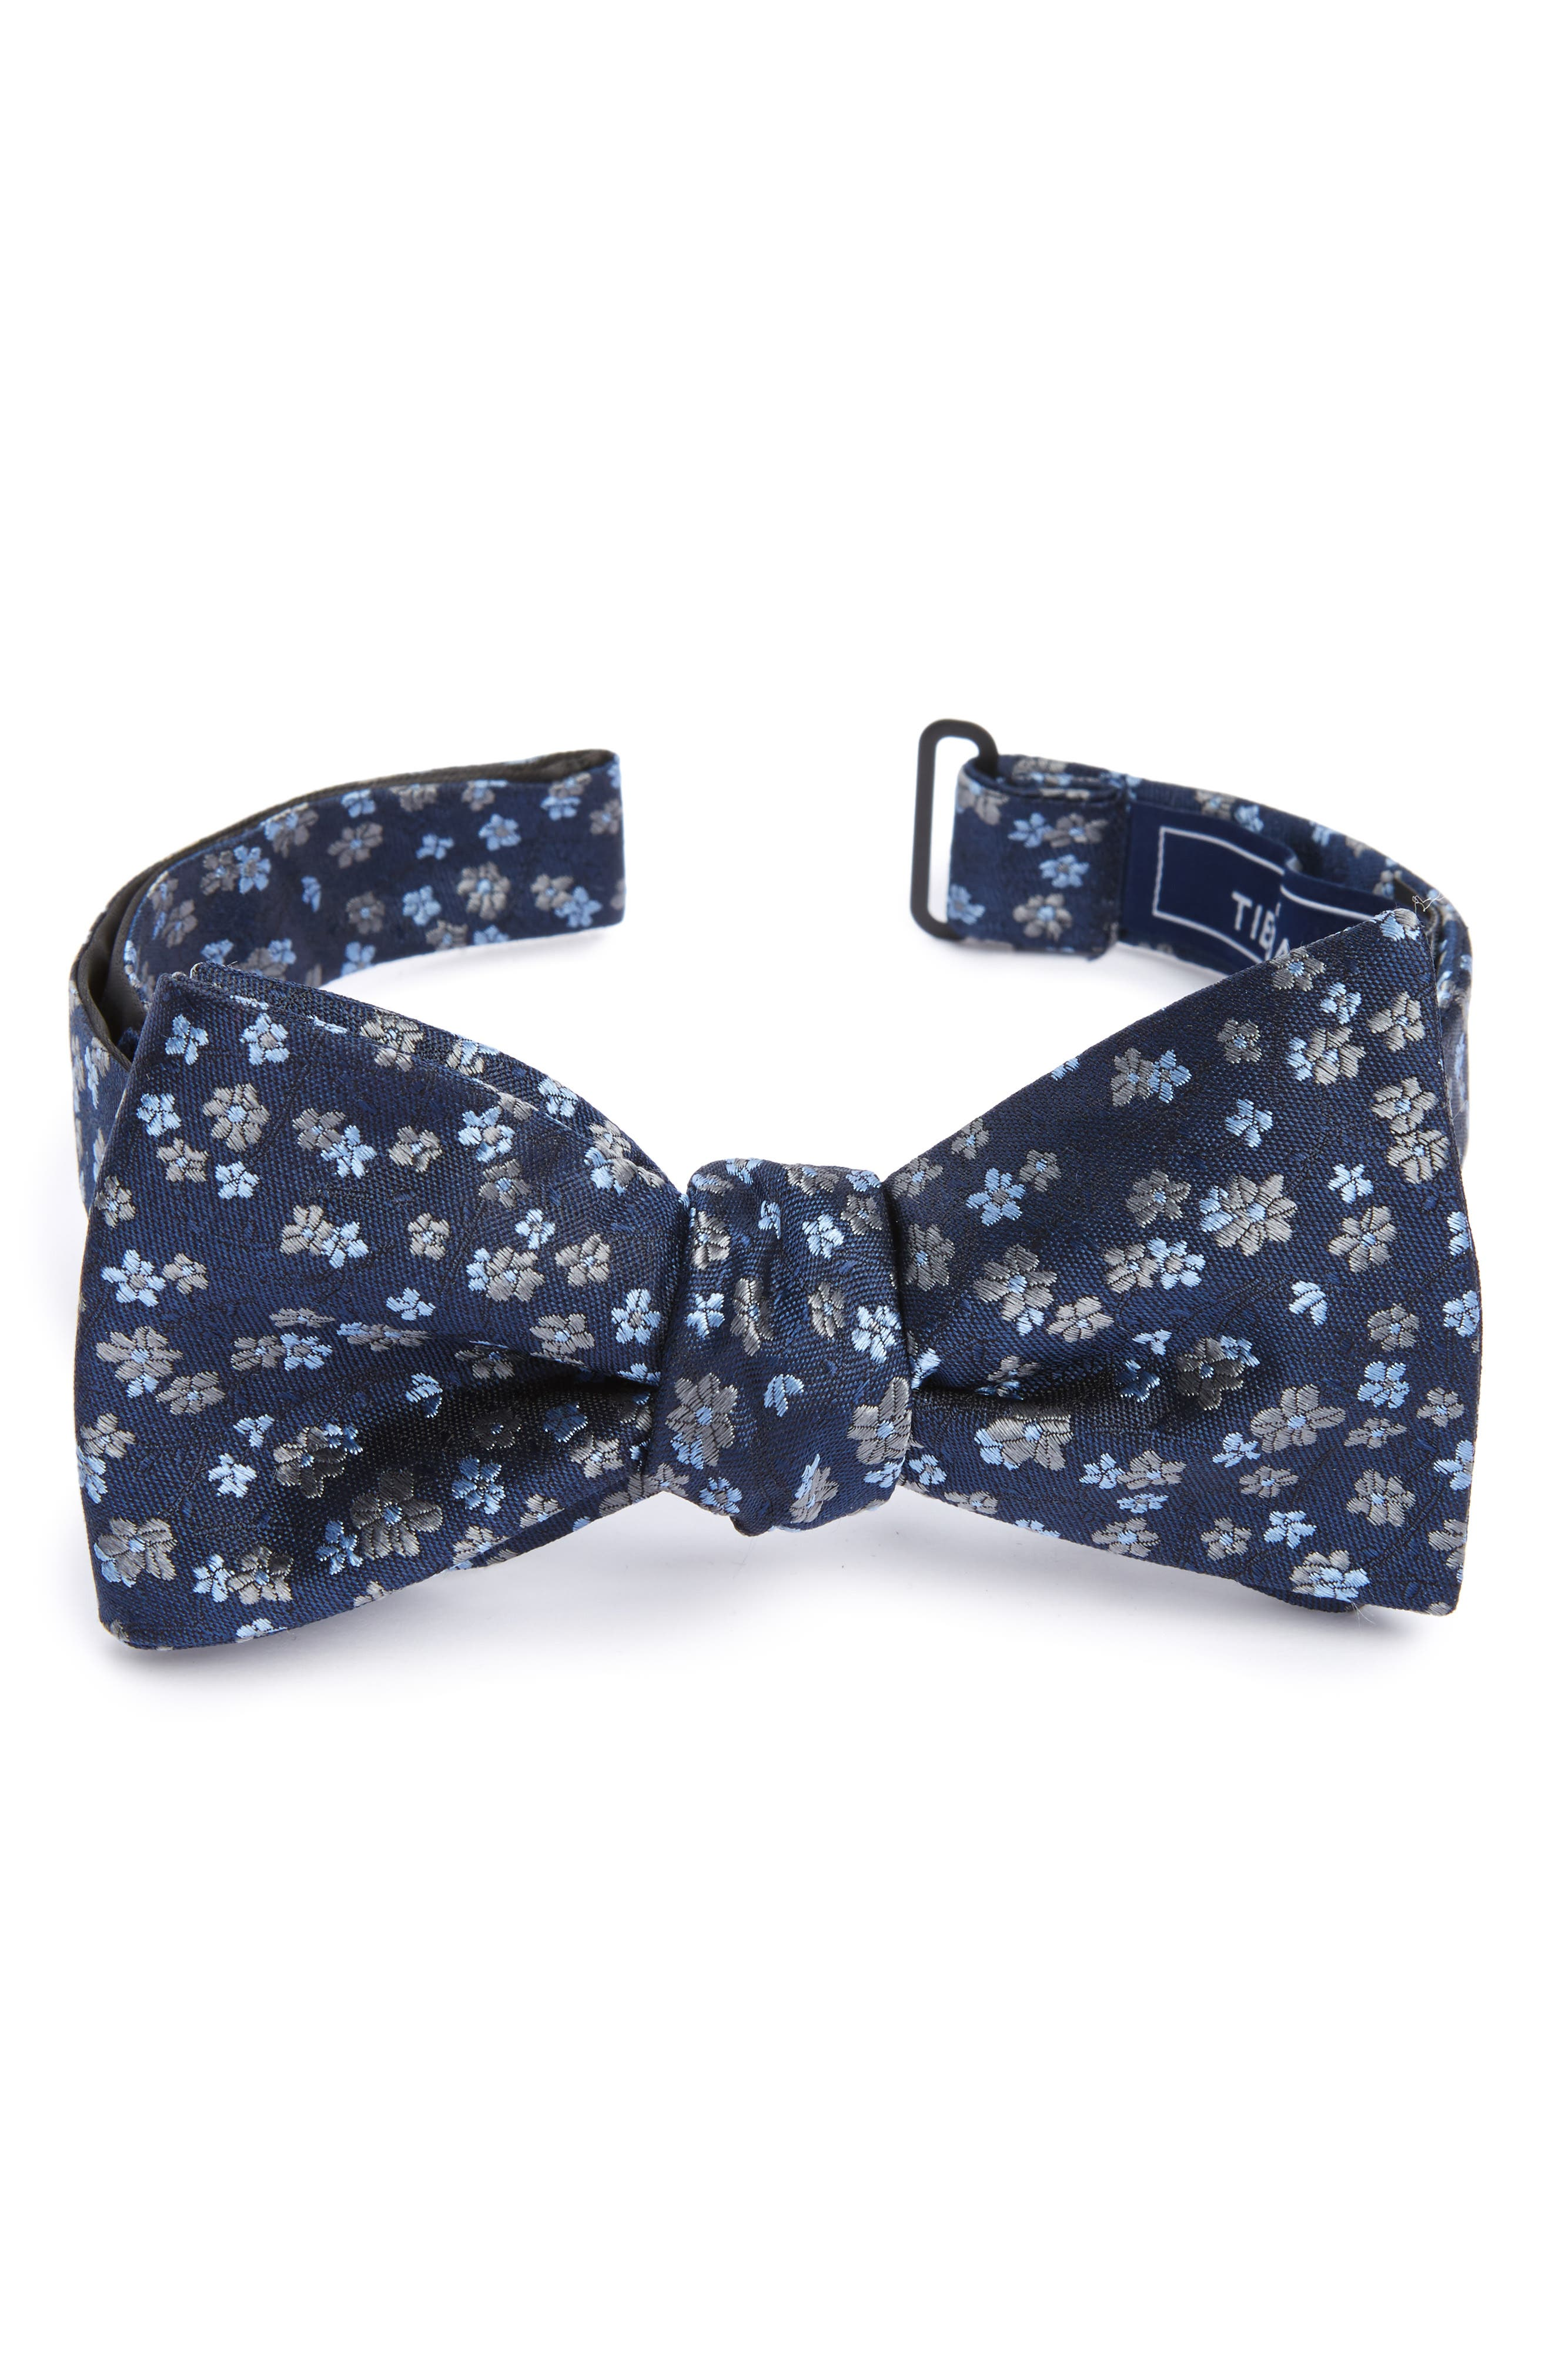 Freefall Floral Silk Bow Tie,                         Main,                         color, Navy